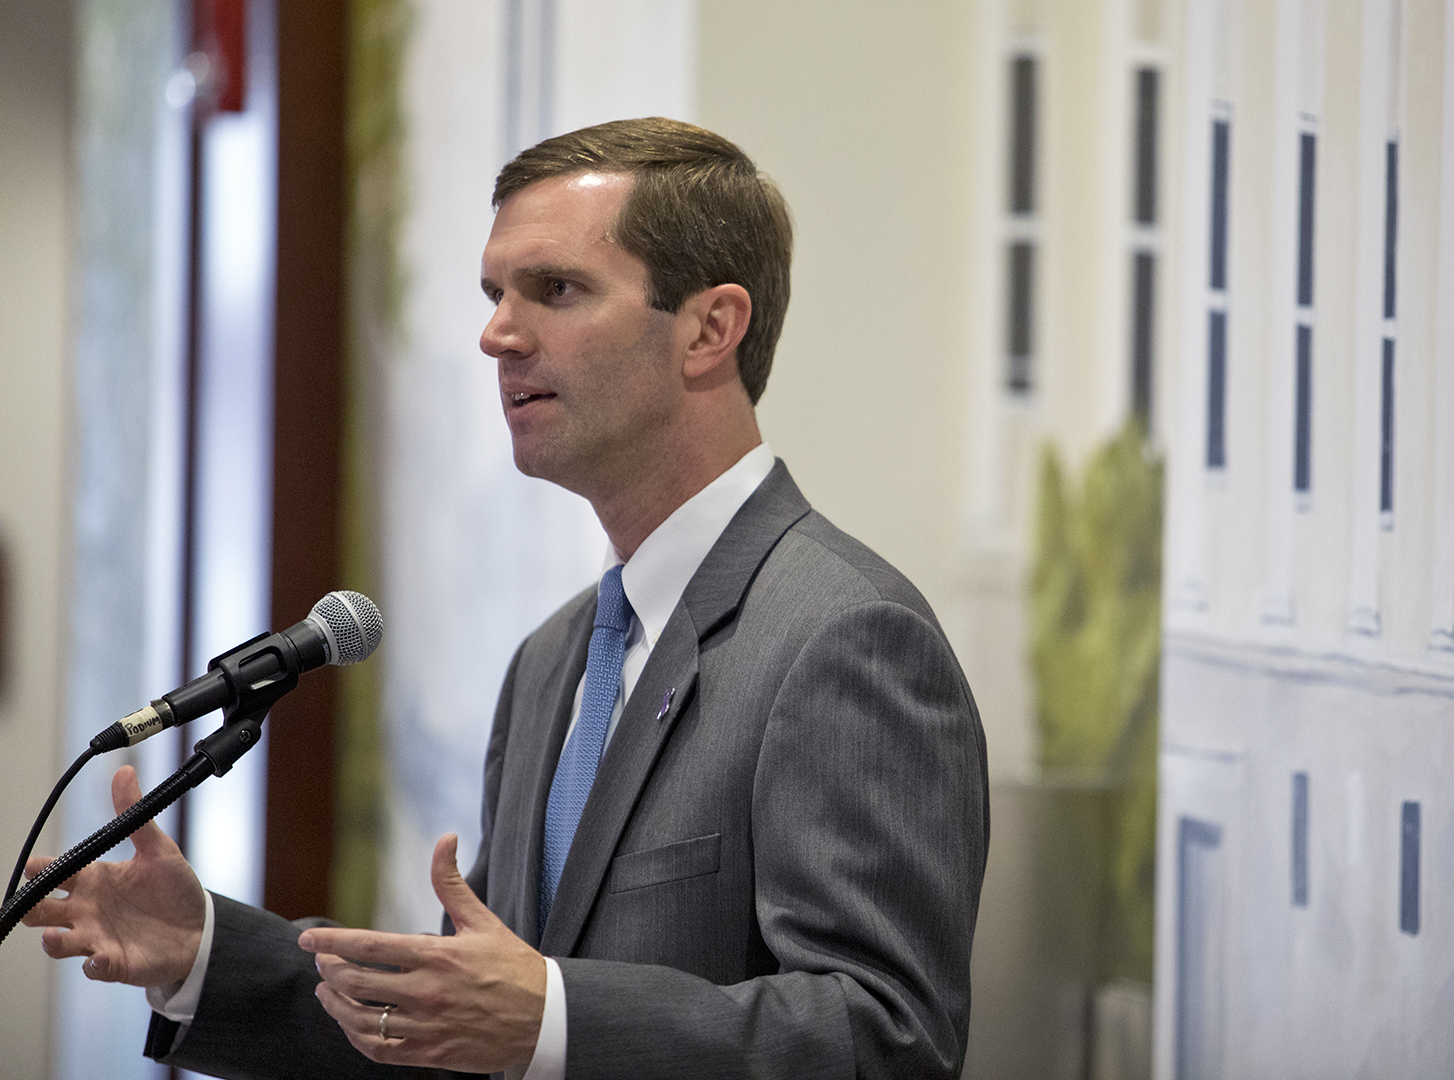 Attorney+General+Andy+Beshear+discusses+how+a+community+should+remain+safe+by+keeping+violence+out+during+the+Proclamation+Signing+in+the+first+floor+of+Downing+Student+Union+on+Oct.+09%2C+in+Bowling+Green.